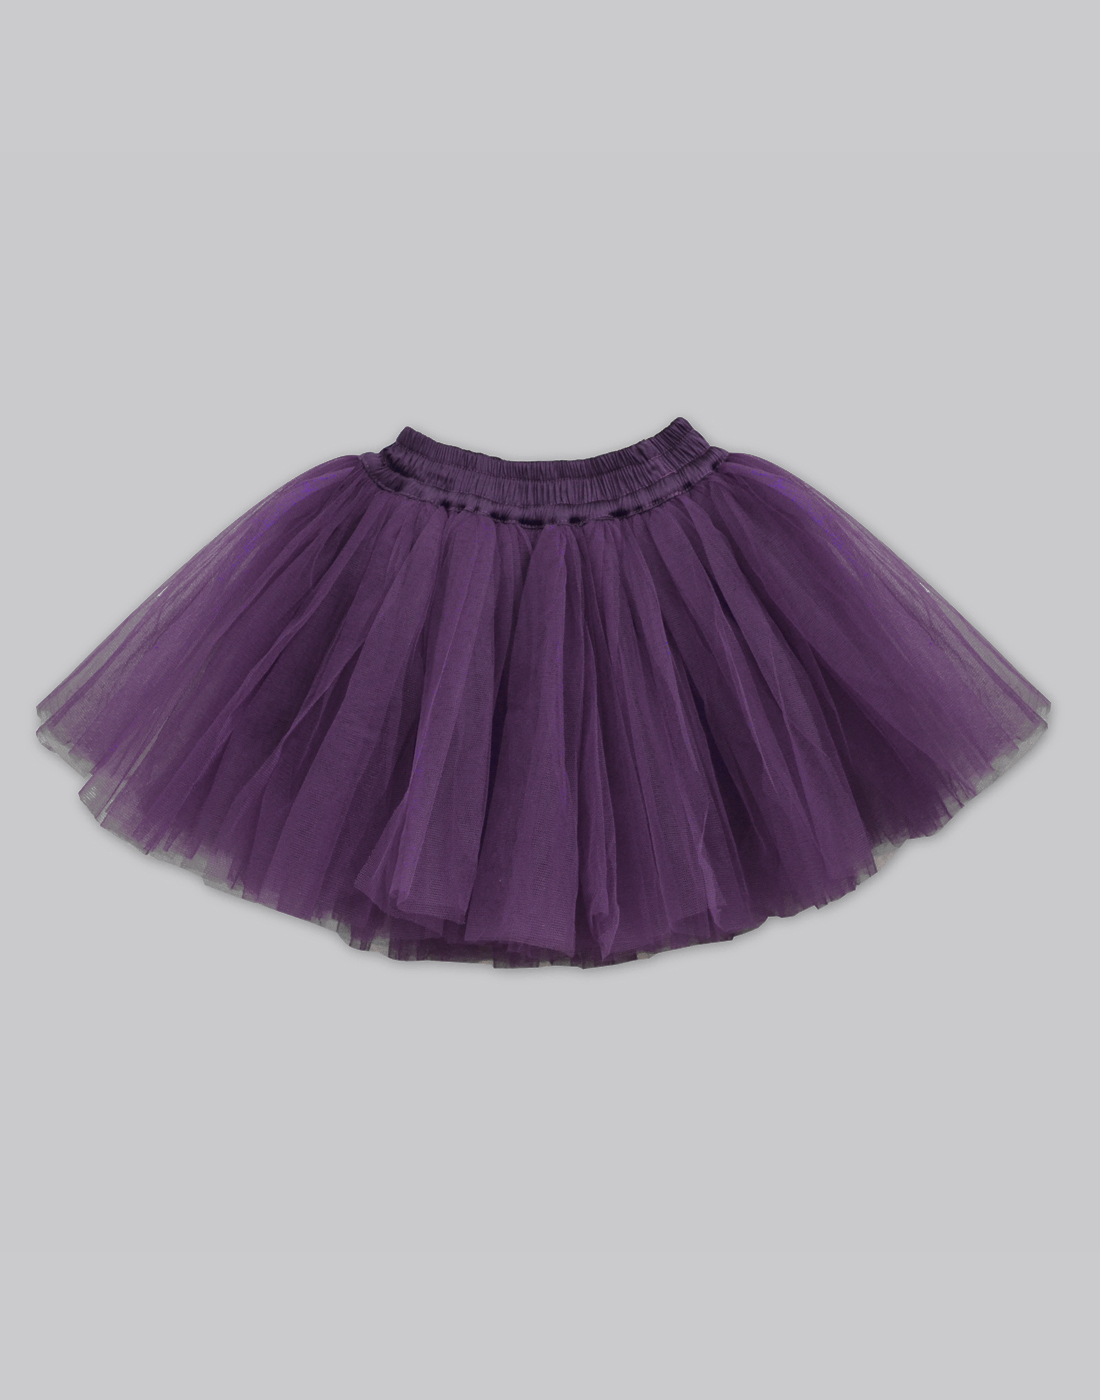 9271a8ec00 Sale! Home / Skirts / Wine Tulle Skirt